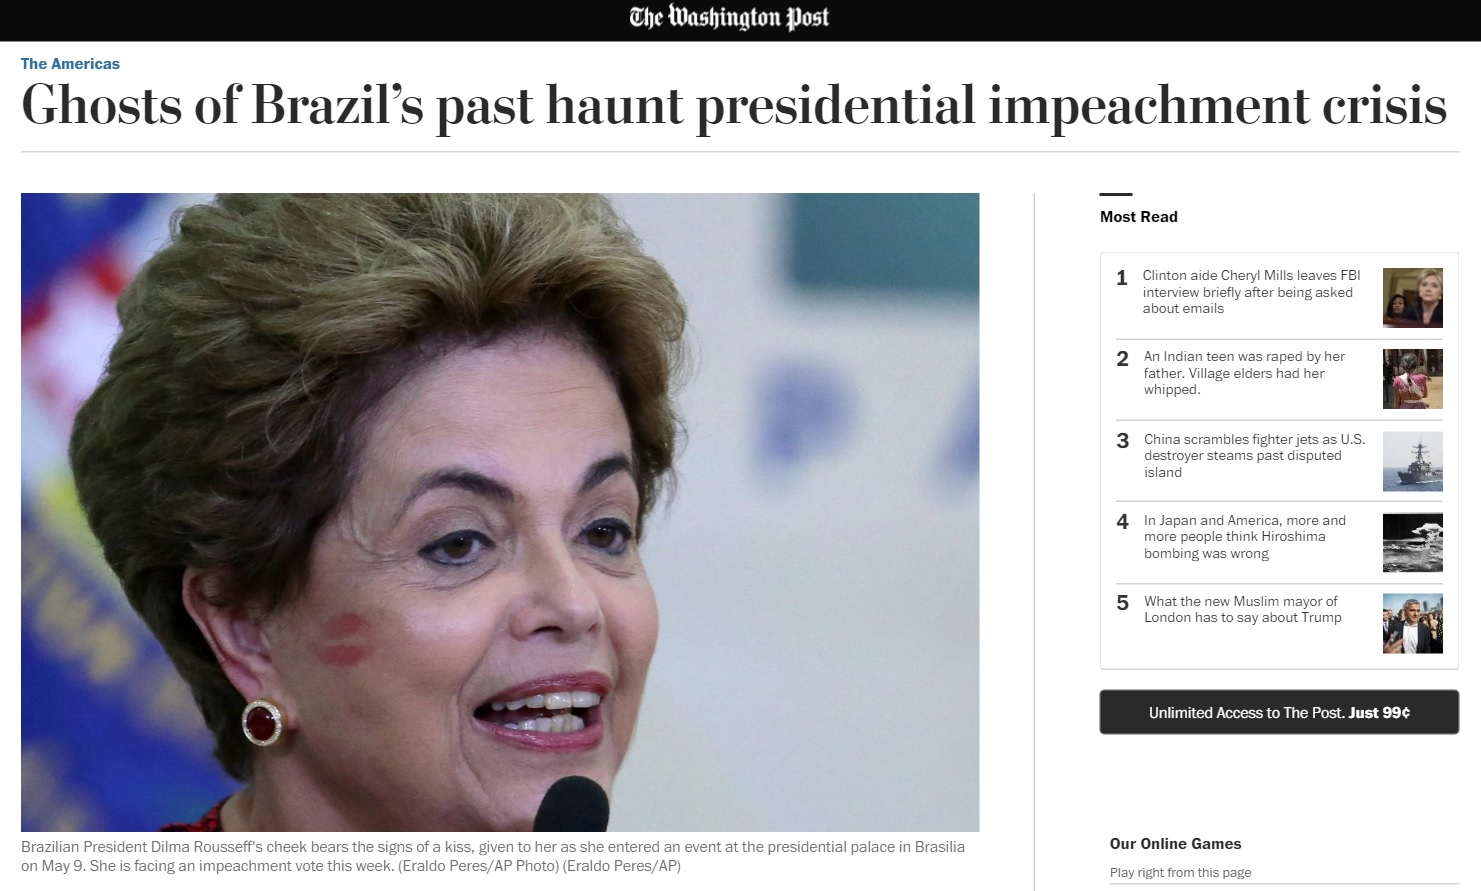 Deu no 'Washington Post': Fantasmas do passado assombram impeachment de Dilma